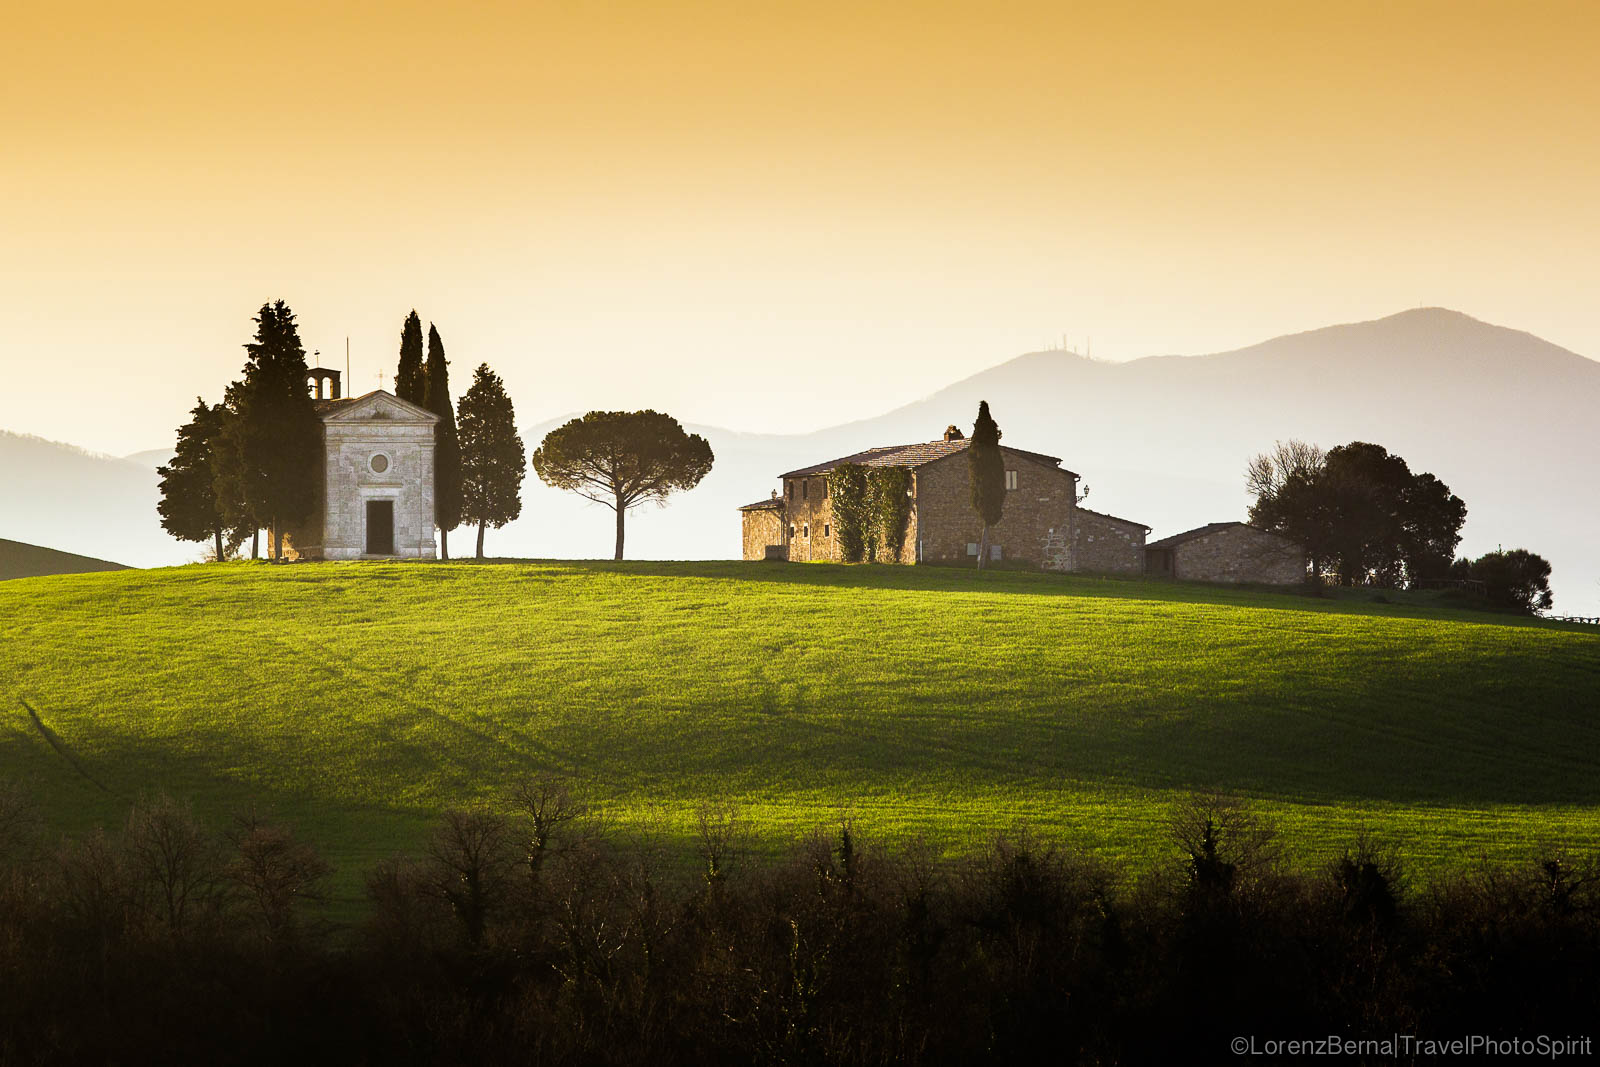 Vitaleta church at sunrise, Tuscany, Italy.